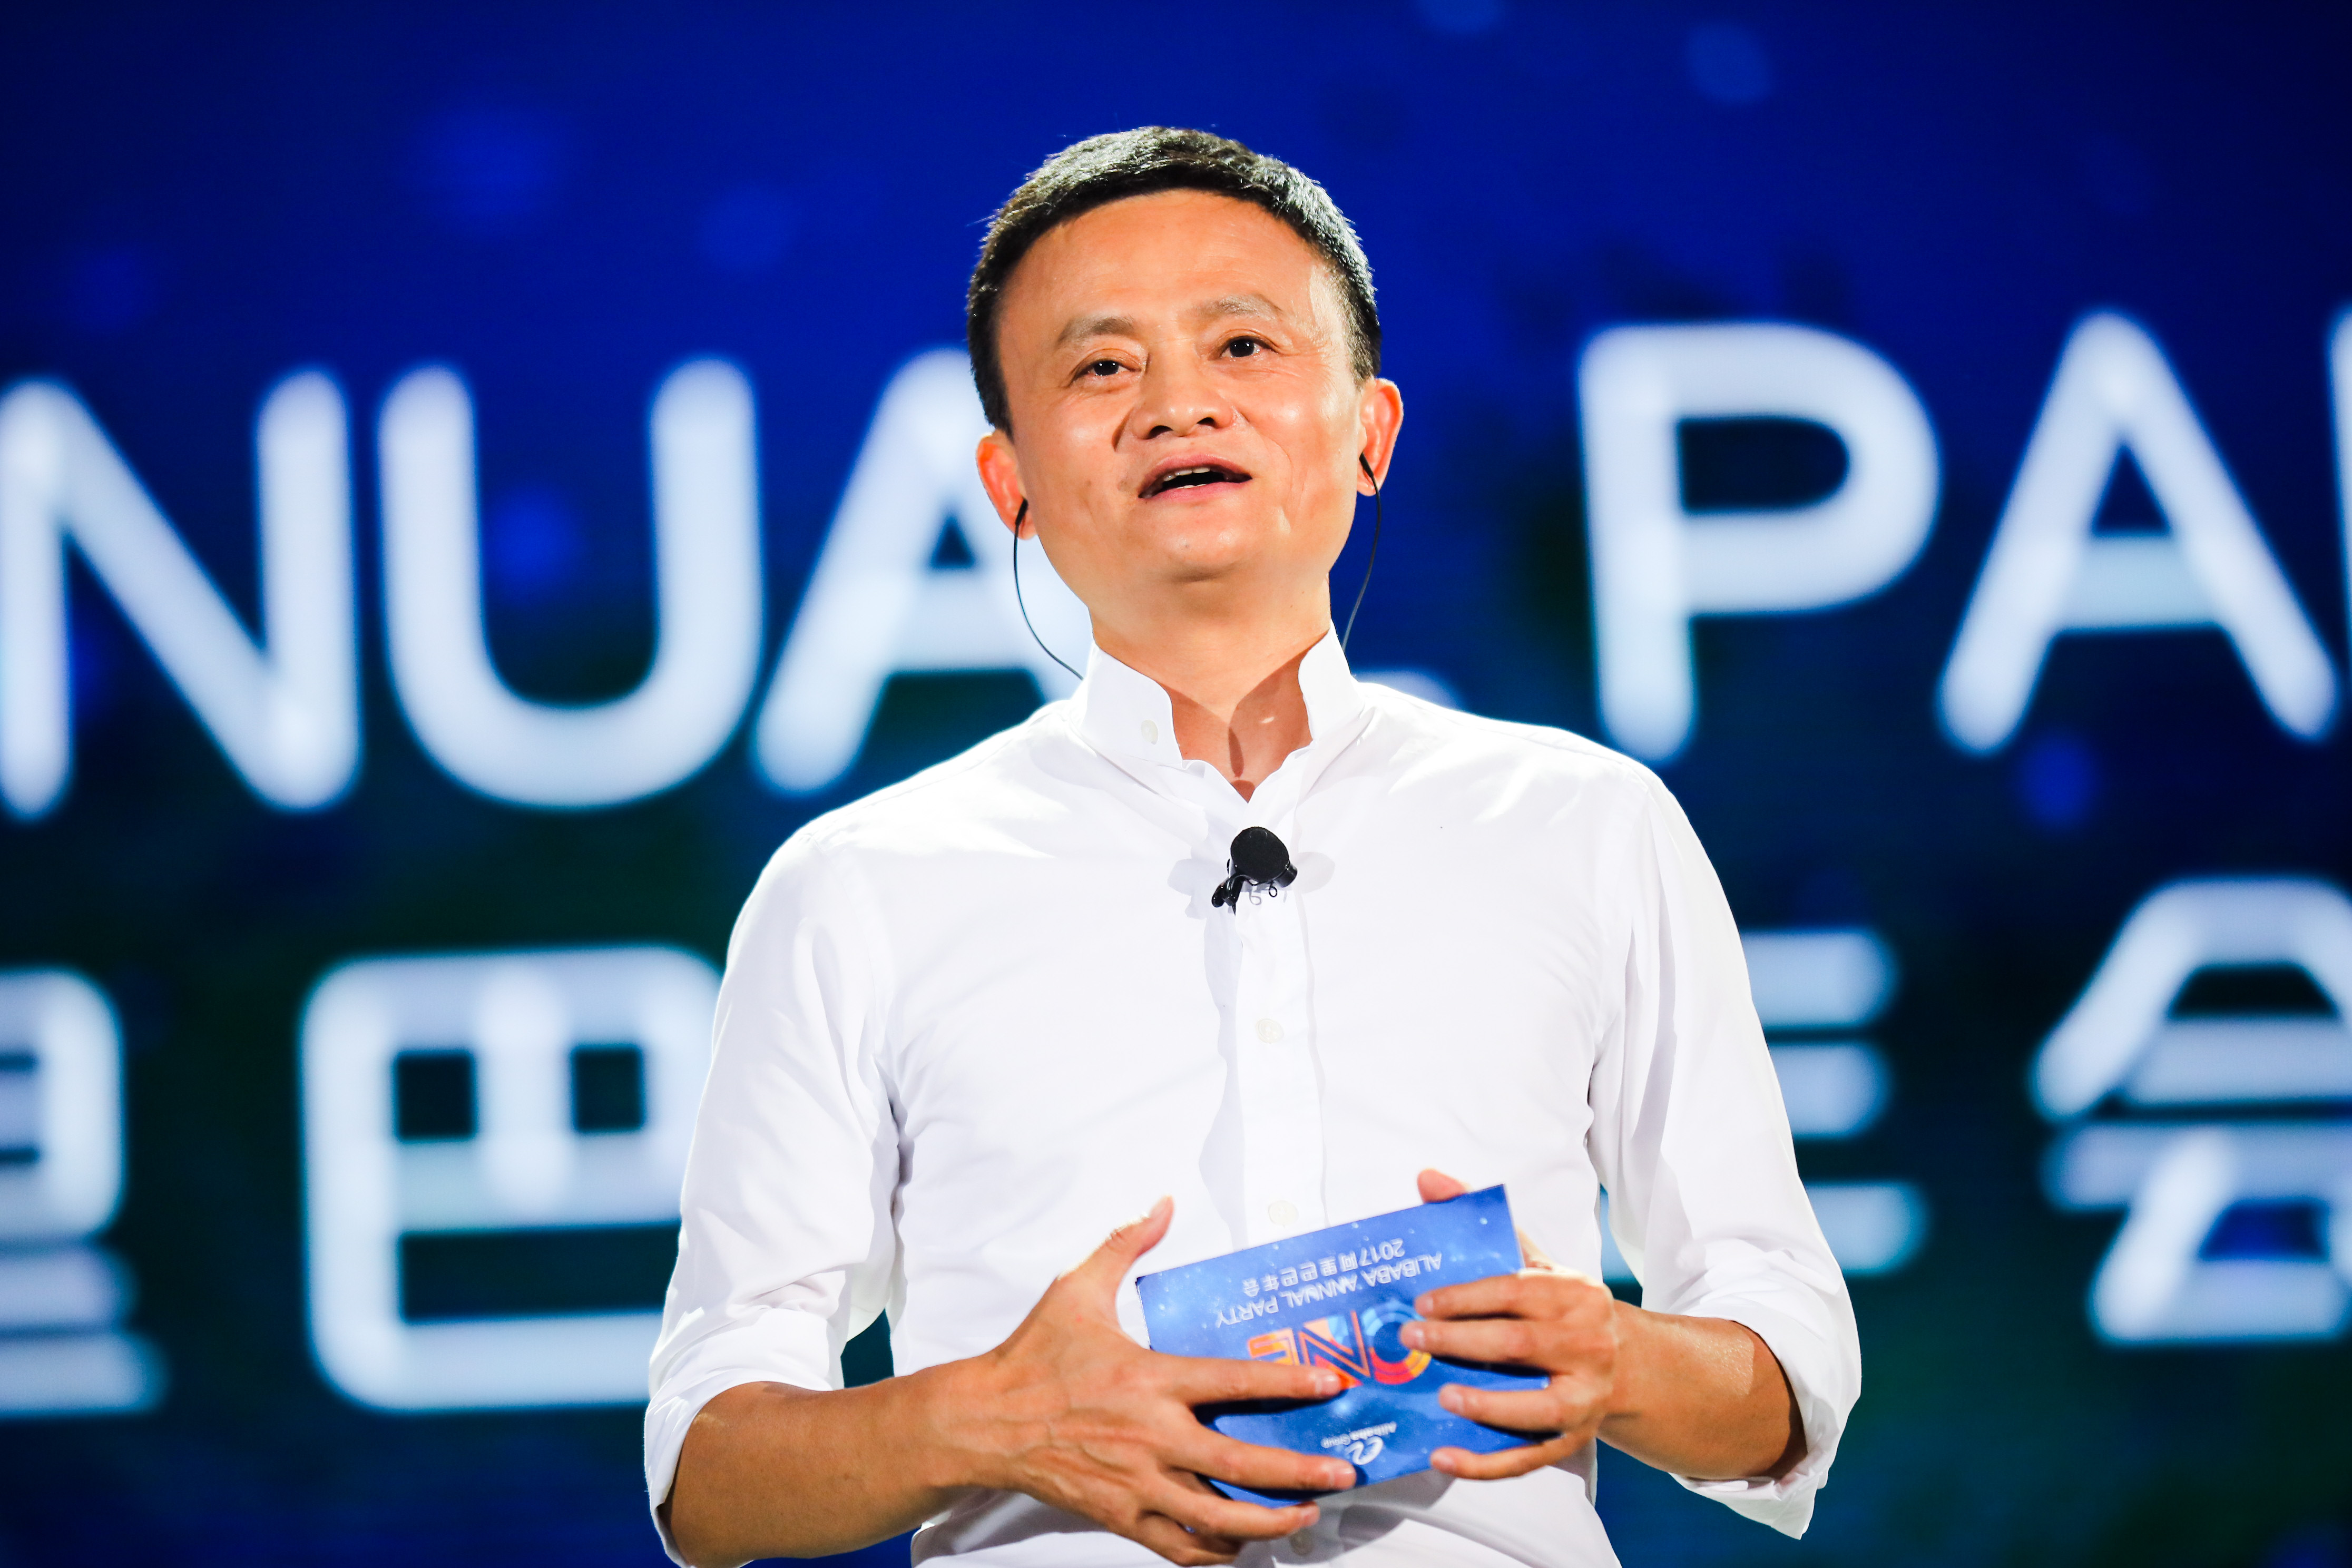 Jack Ma, founder and chairman of China's e-commerce giant Alibaba